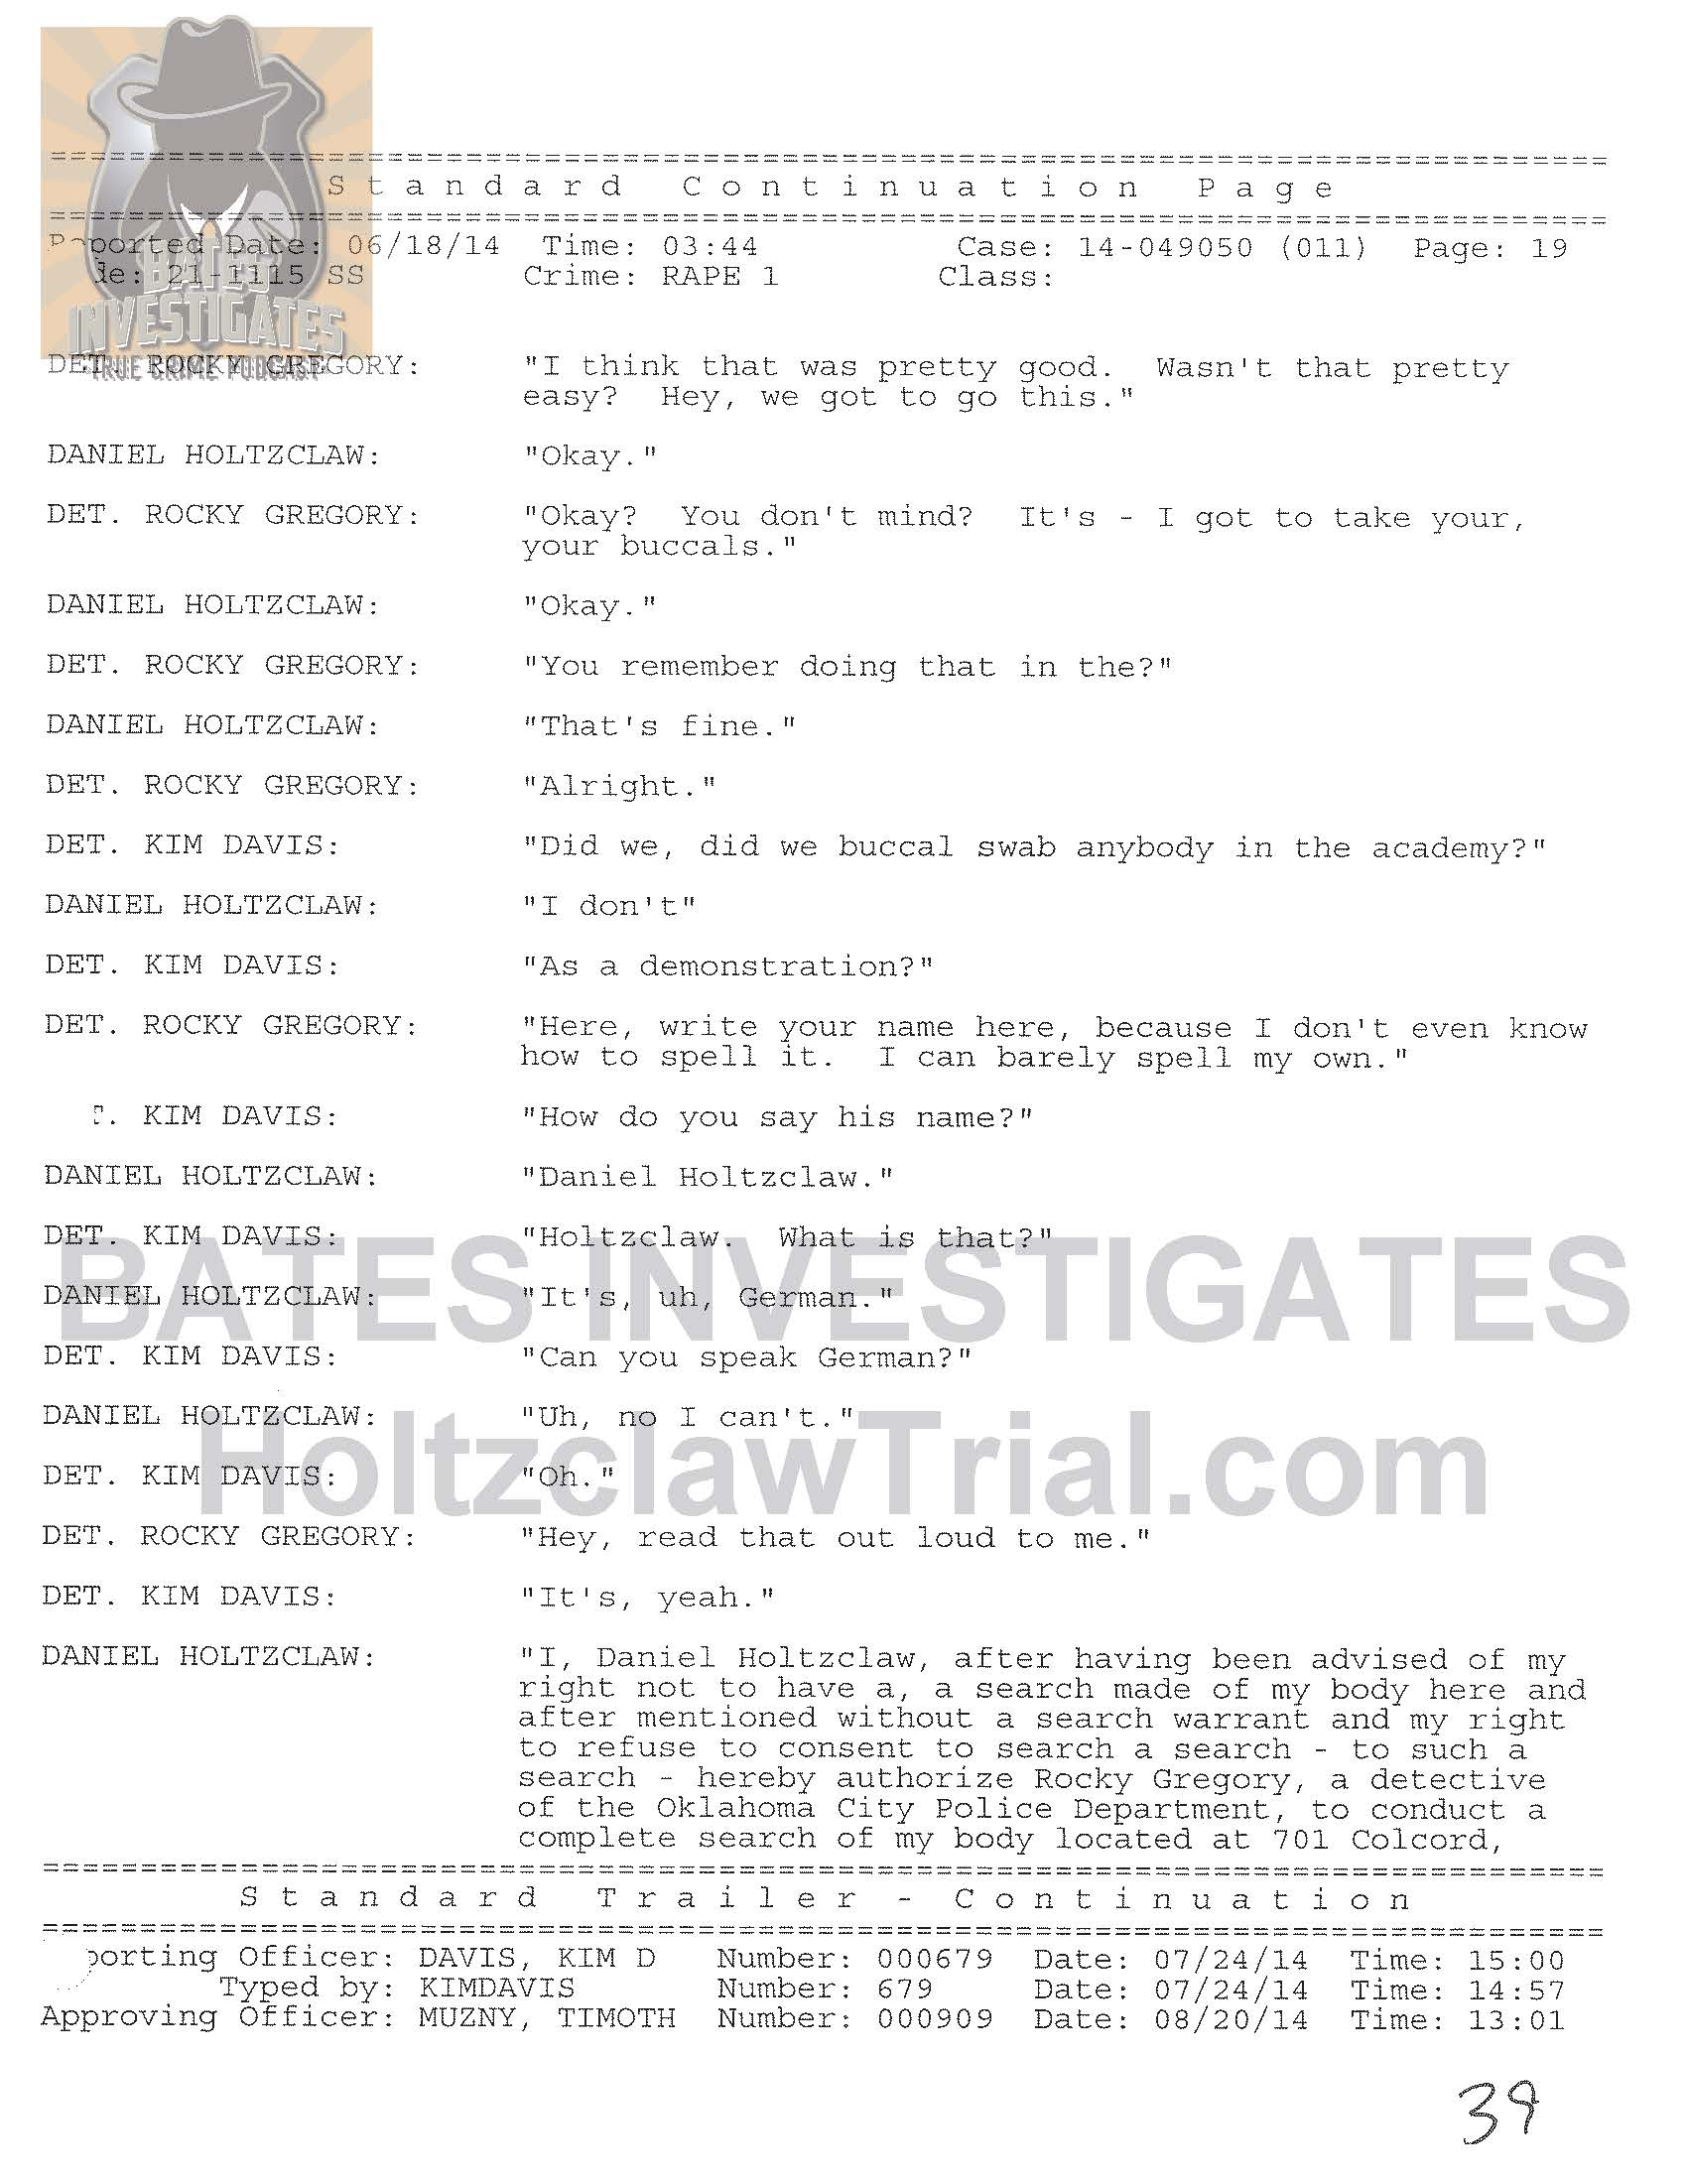 Holtzclaw Interrogation Transcript - Ep02 Redacted_Page_19.jpg